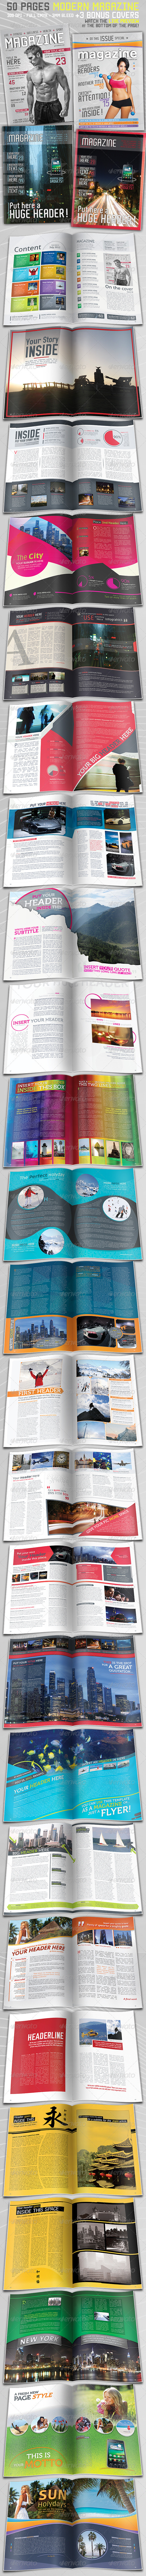 50 Page Magazine / Newsletter + 3 Bonus Covers - Magazines Print Templates